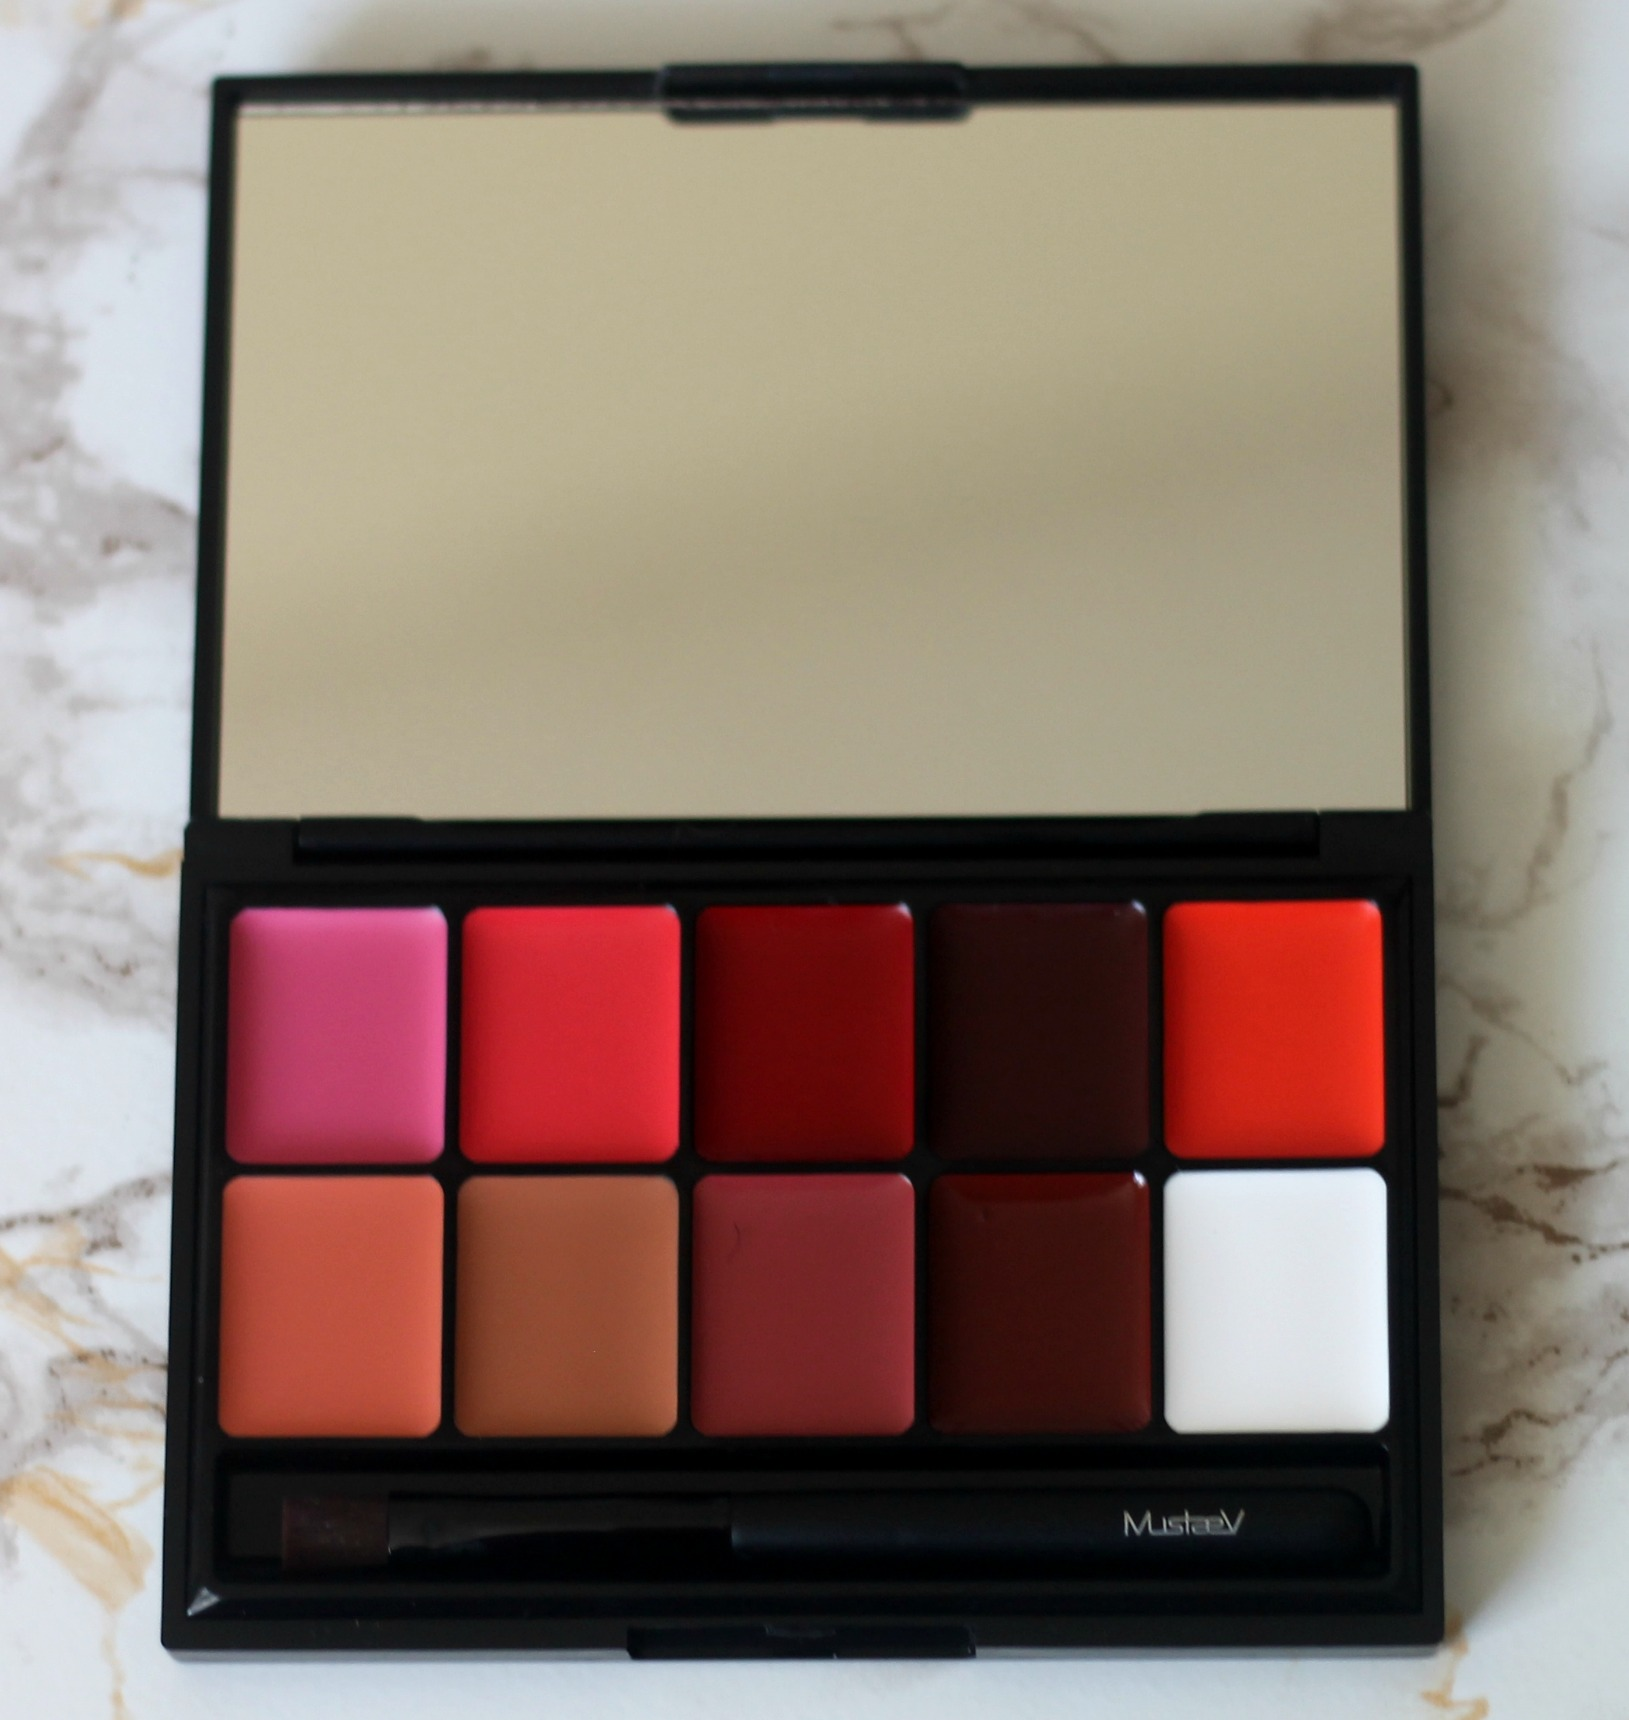 mustaev-beauty-10-Shade-Lip-Cream-Pro-Palette-product-review-swatches-on-dark-skin-beauty-and-the-beat-blog